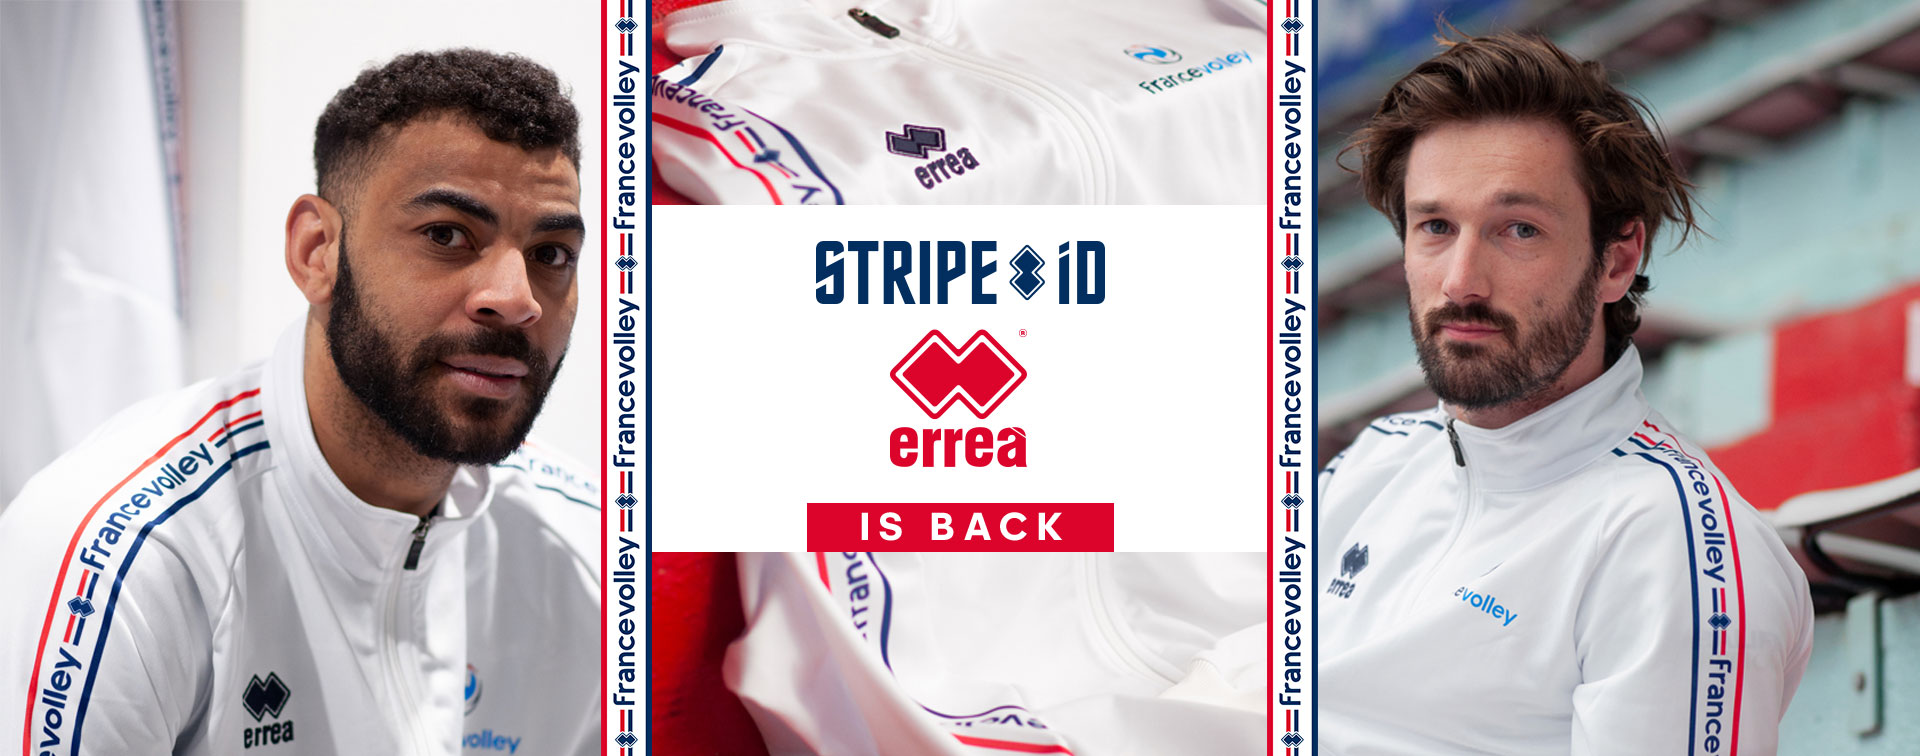 Collection Stripe ID